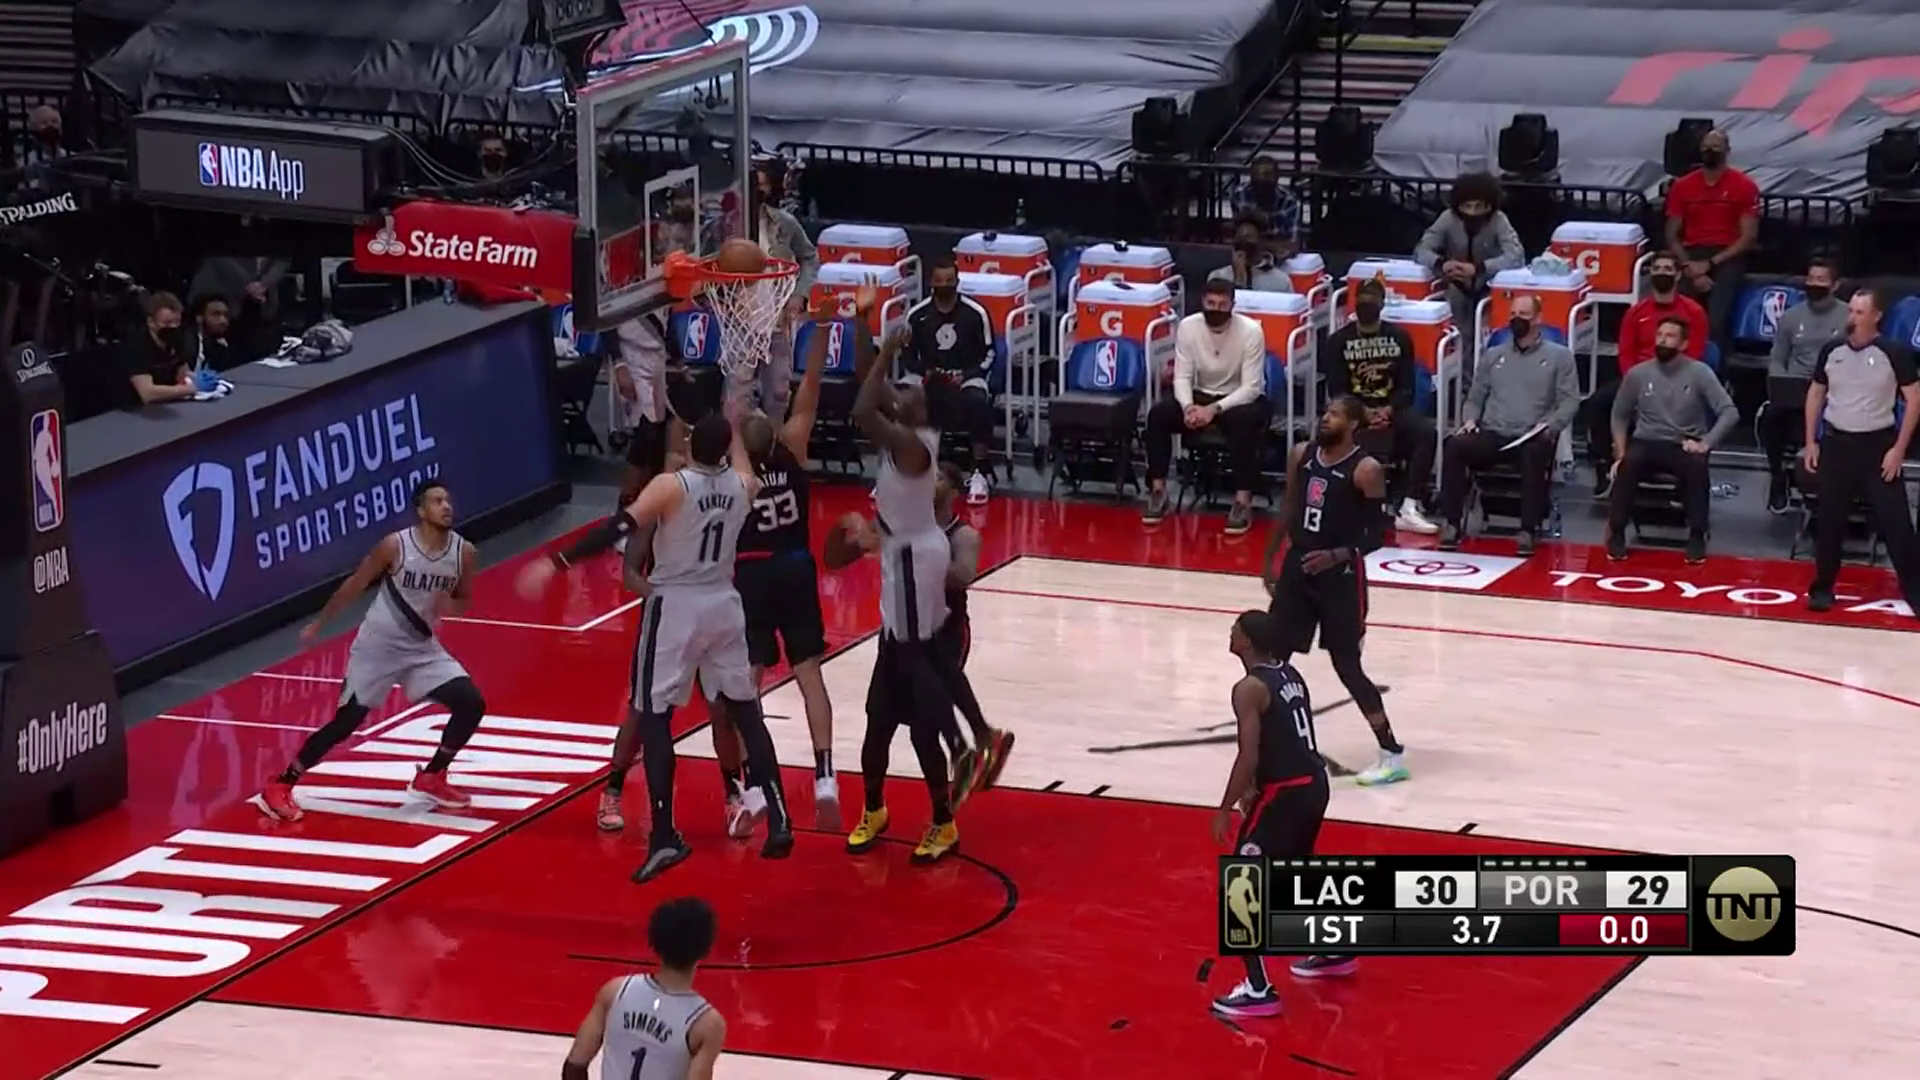 CJ McCollum gets the lefty floater to fall